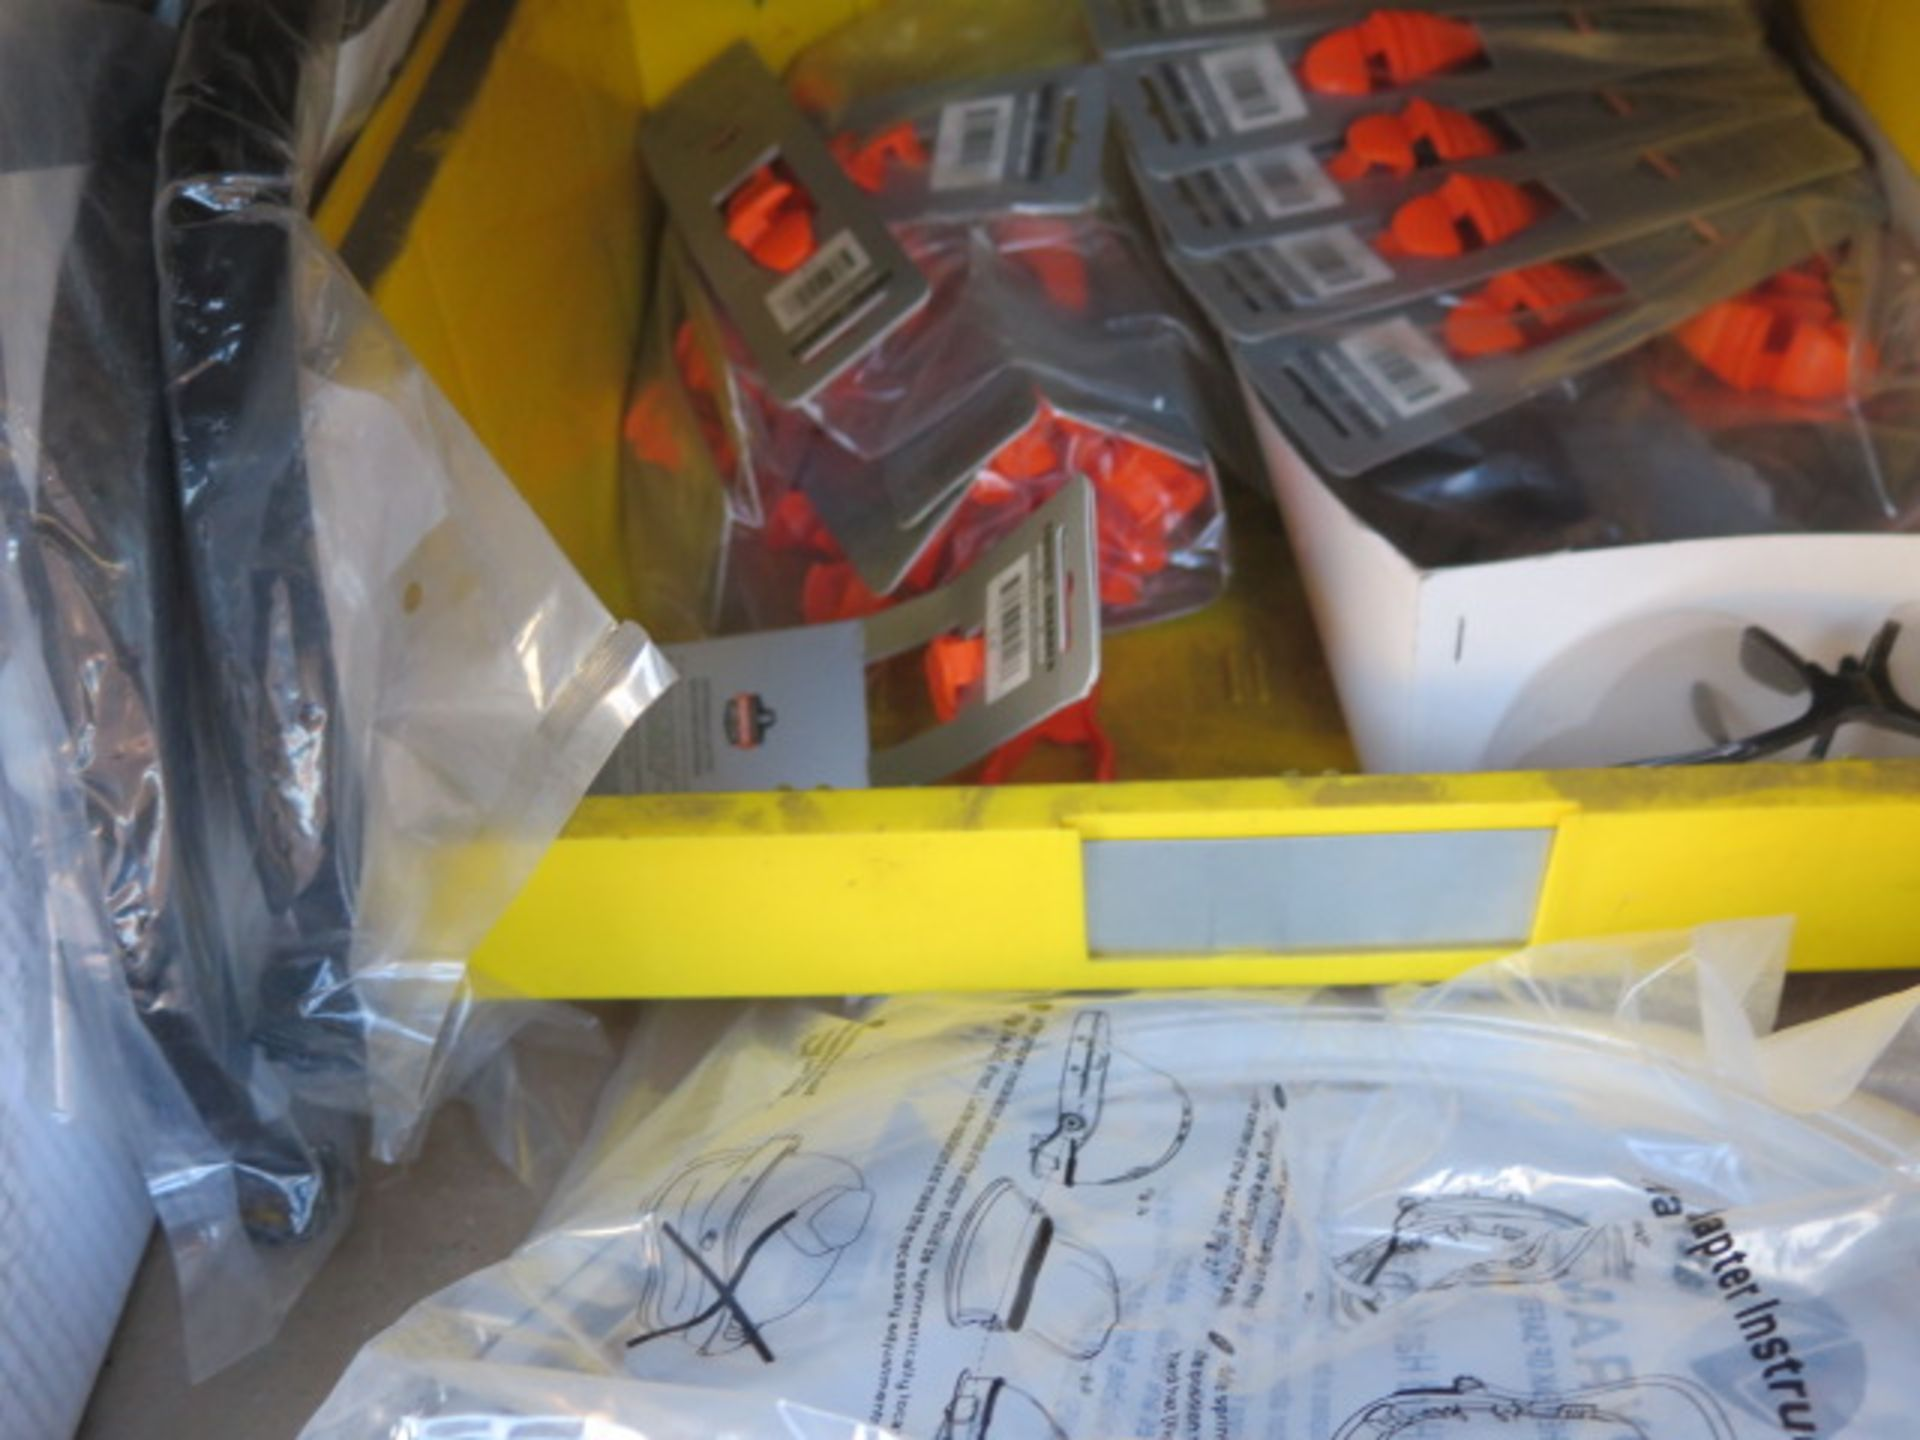 Knaack 109 Jobmaster Rolling Job Box w/ Safety Supplies (SOLD AS-IS - NO WARRANTY) - Image 13 of 19